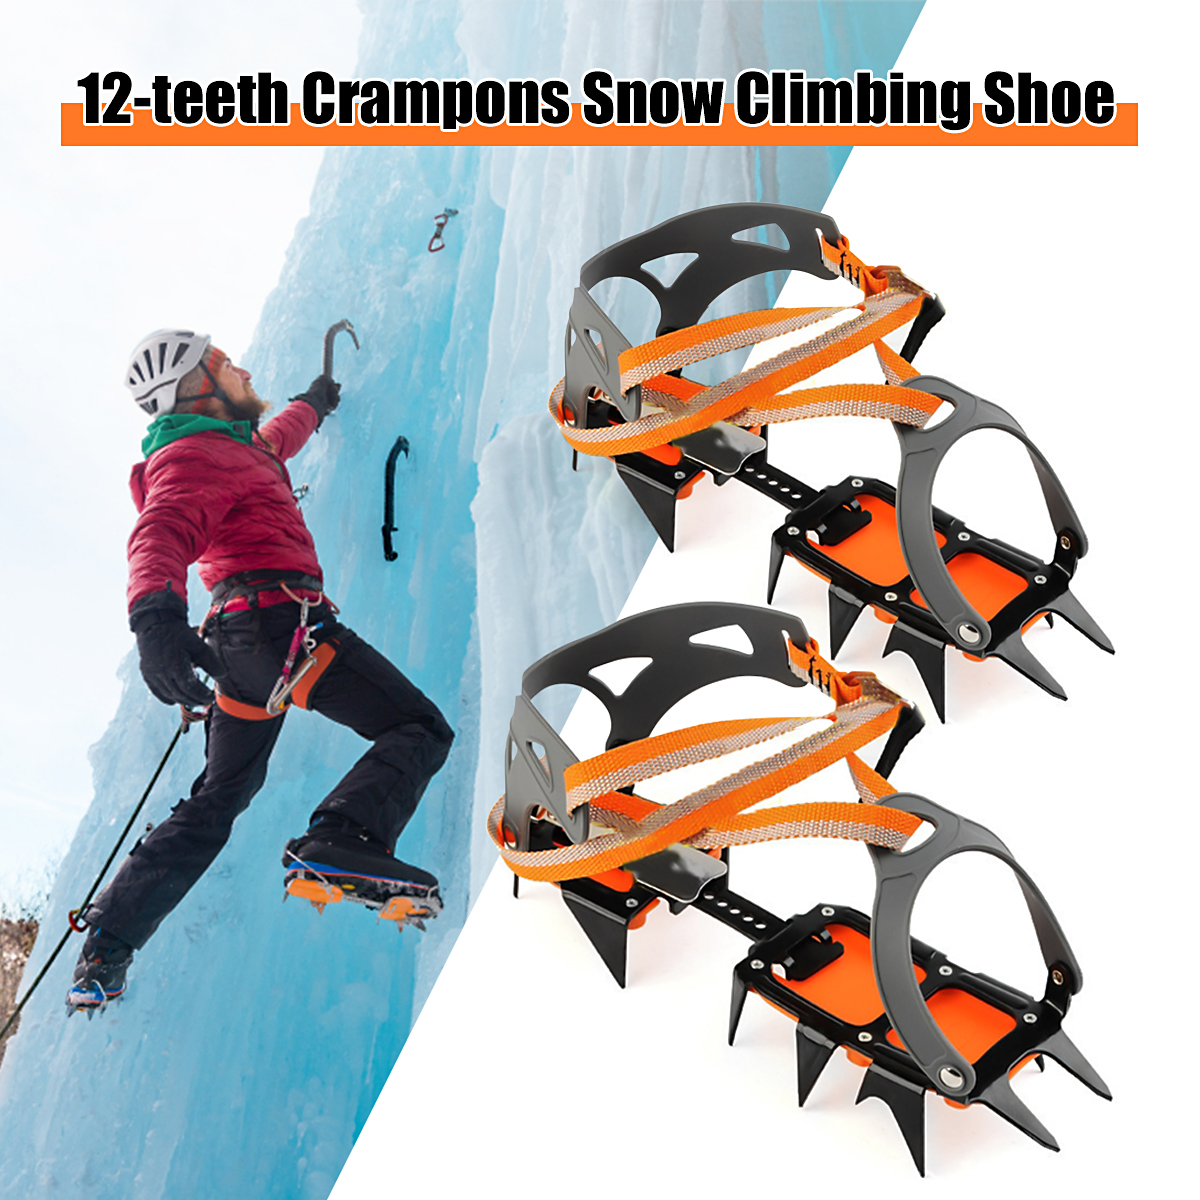 New arrival 1 Pair Ice Crampons Non-Slip Snow Shoe Spikes Grips Cleats crampons Winter Climbing Hiking Anti Slip Safety Tool